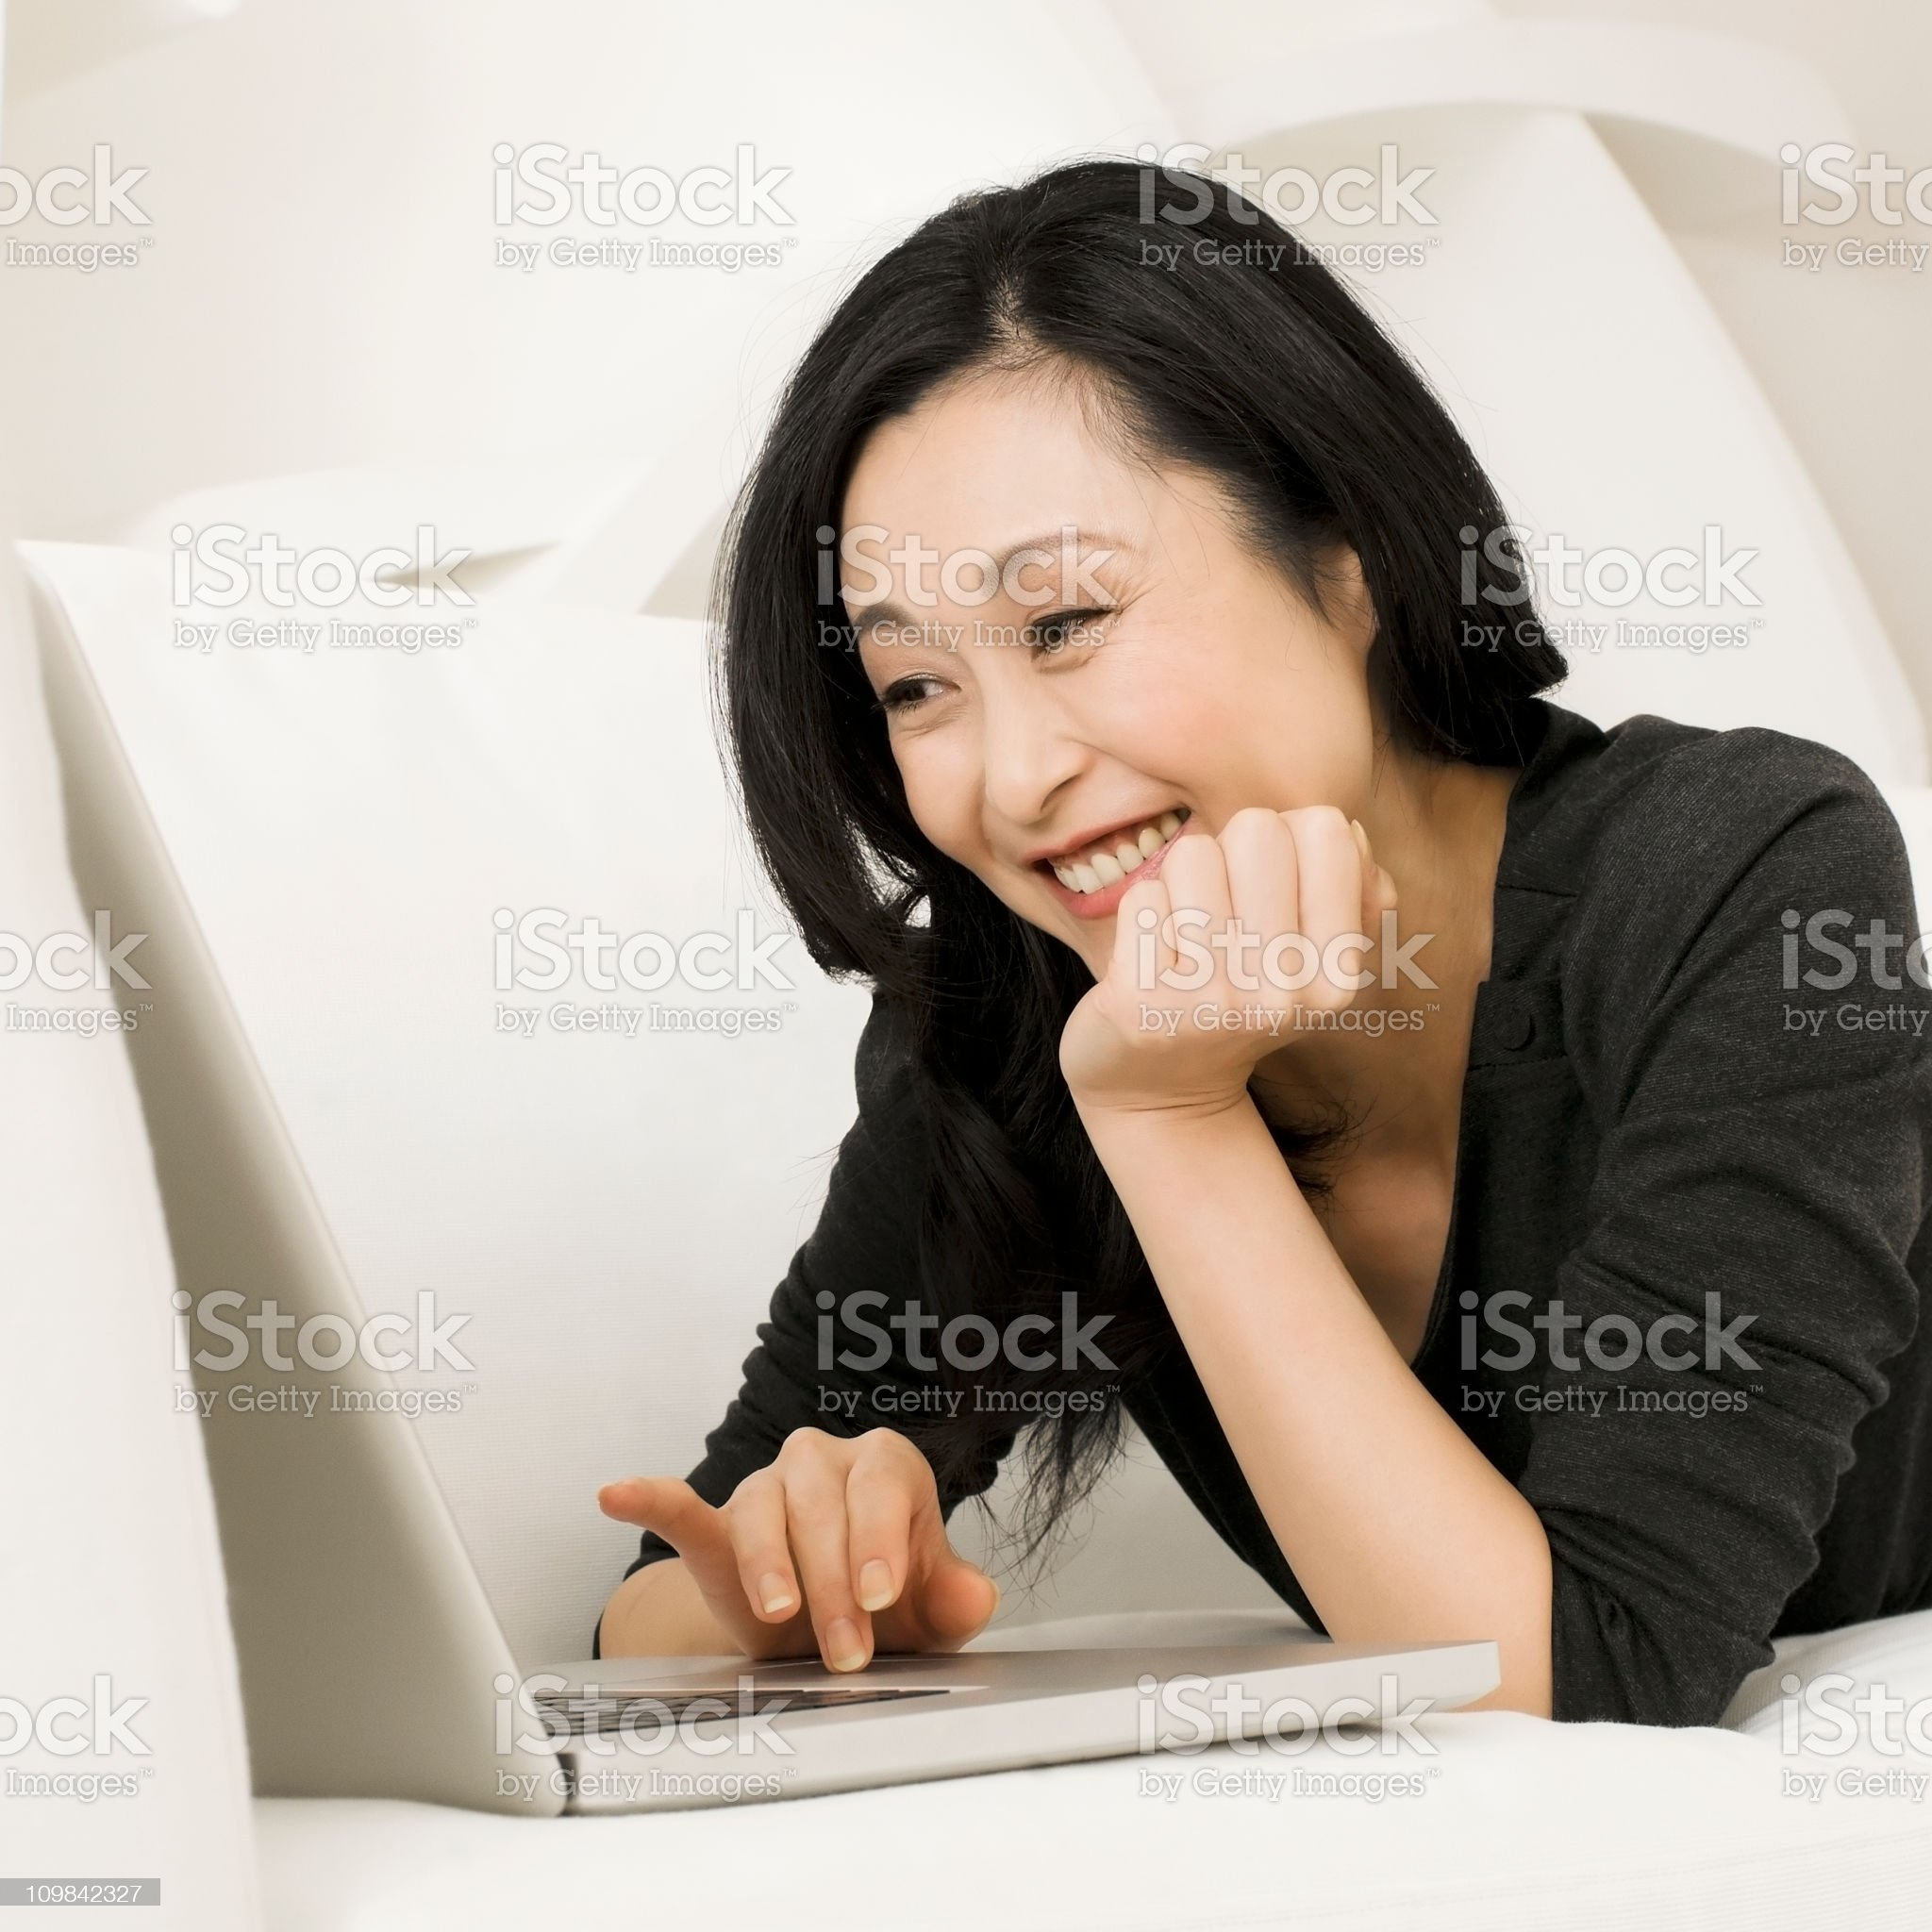 Woman Lying on the Sofa and Using a Laptop royalty-free stock photo